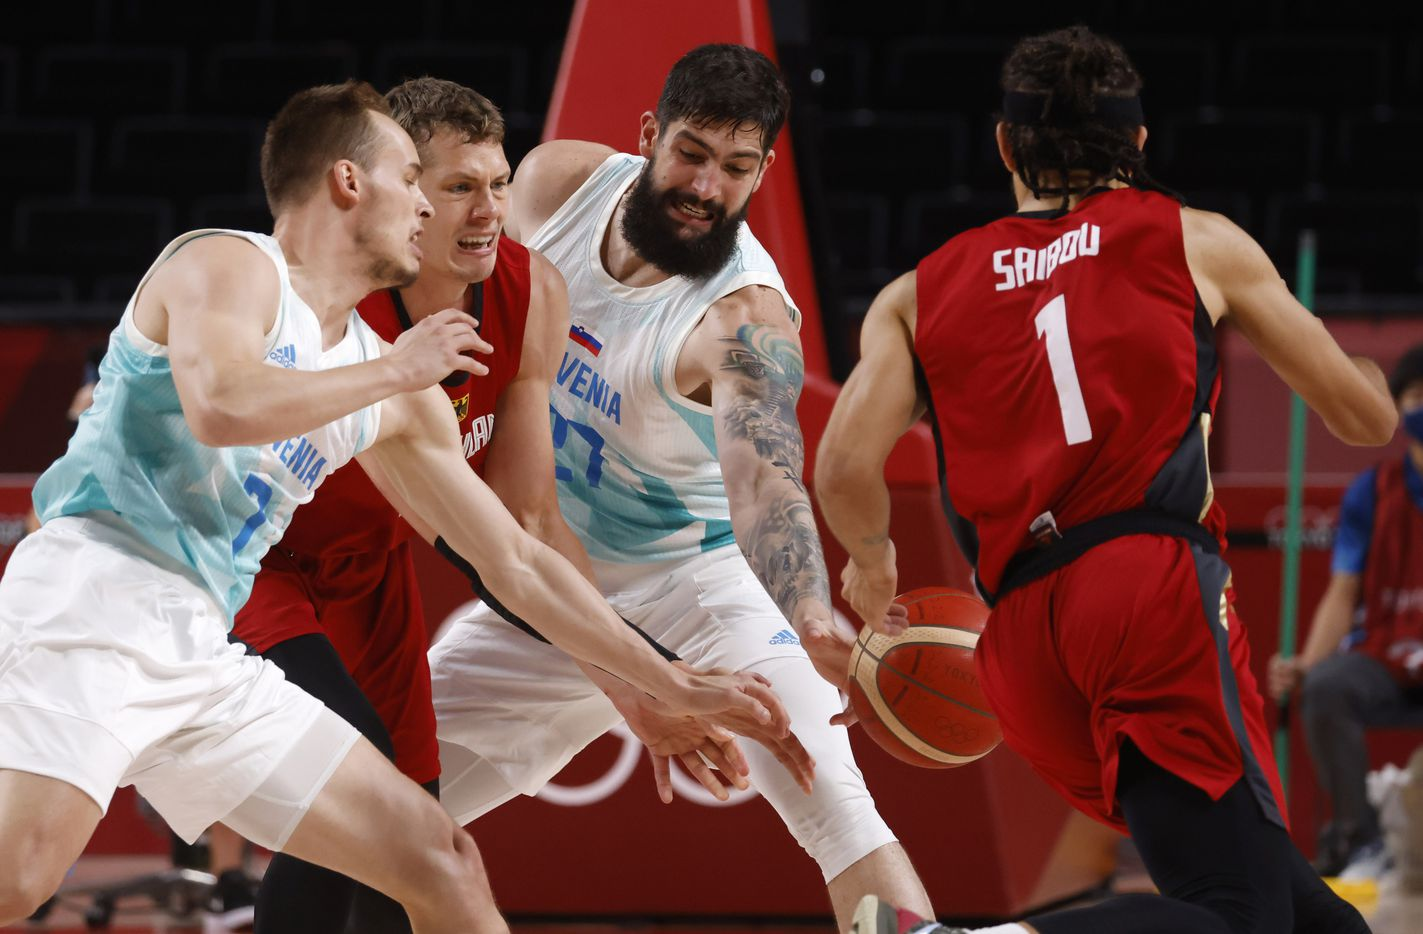 Slovenia's Ziga Dimec (27) knocks the ball away from Germany's Moritz Wagner (13) as he attempts to pass to Joshiko Saibou (1) as Slovenia's Klemen Prepelic (7) defends during the first half of play of a quarter final basketball game at the postponed 2020 Tokyo Olympics at Saitama Super Arena, on Tuesday, August 3, 2021, in Saitama, Japan. (Vernon Bryant/The Dallas Morning News)